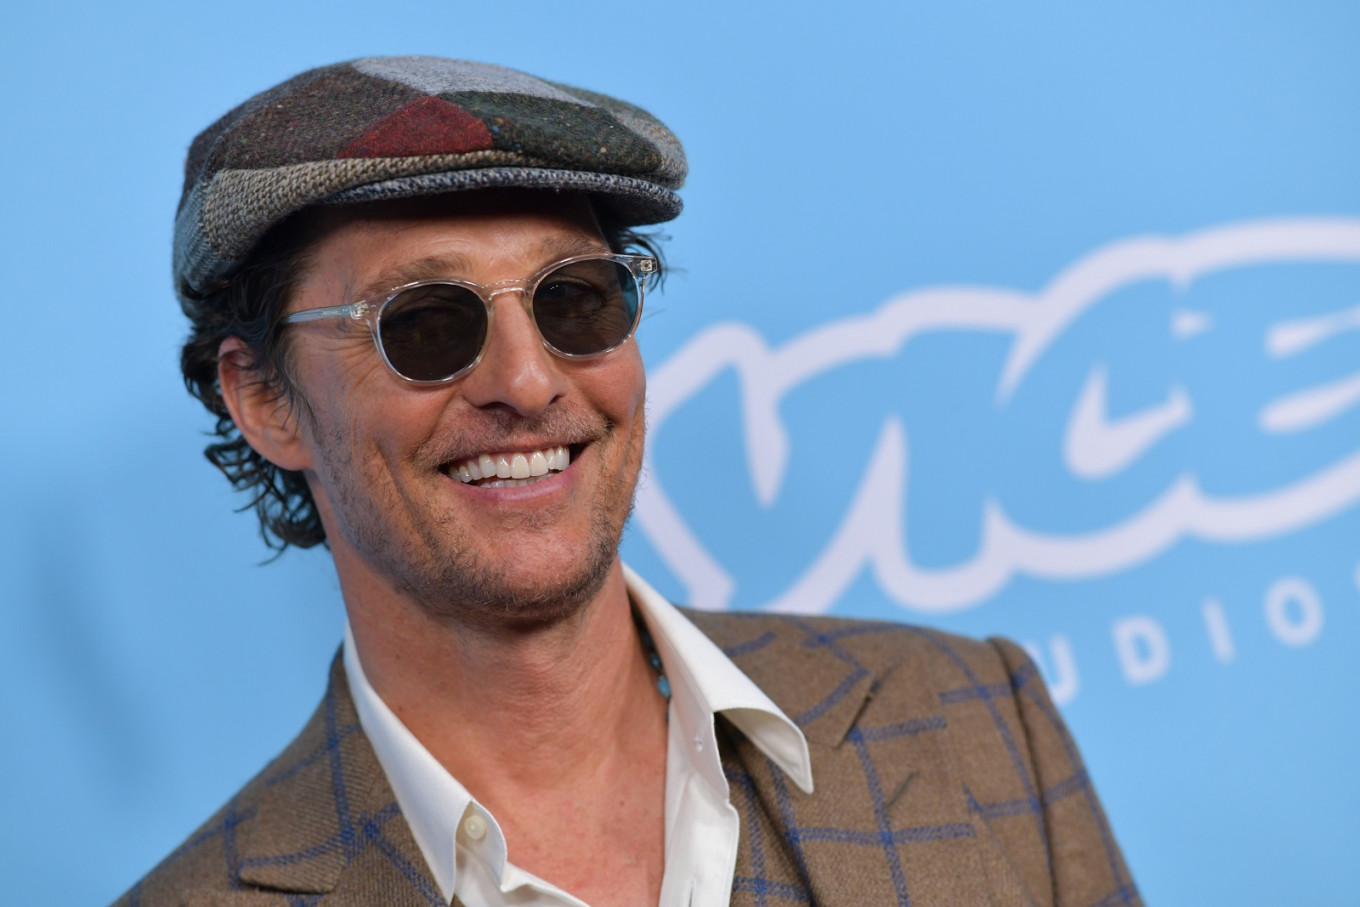 Matthew McConaughey tapped as professor at University of Texas